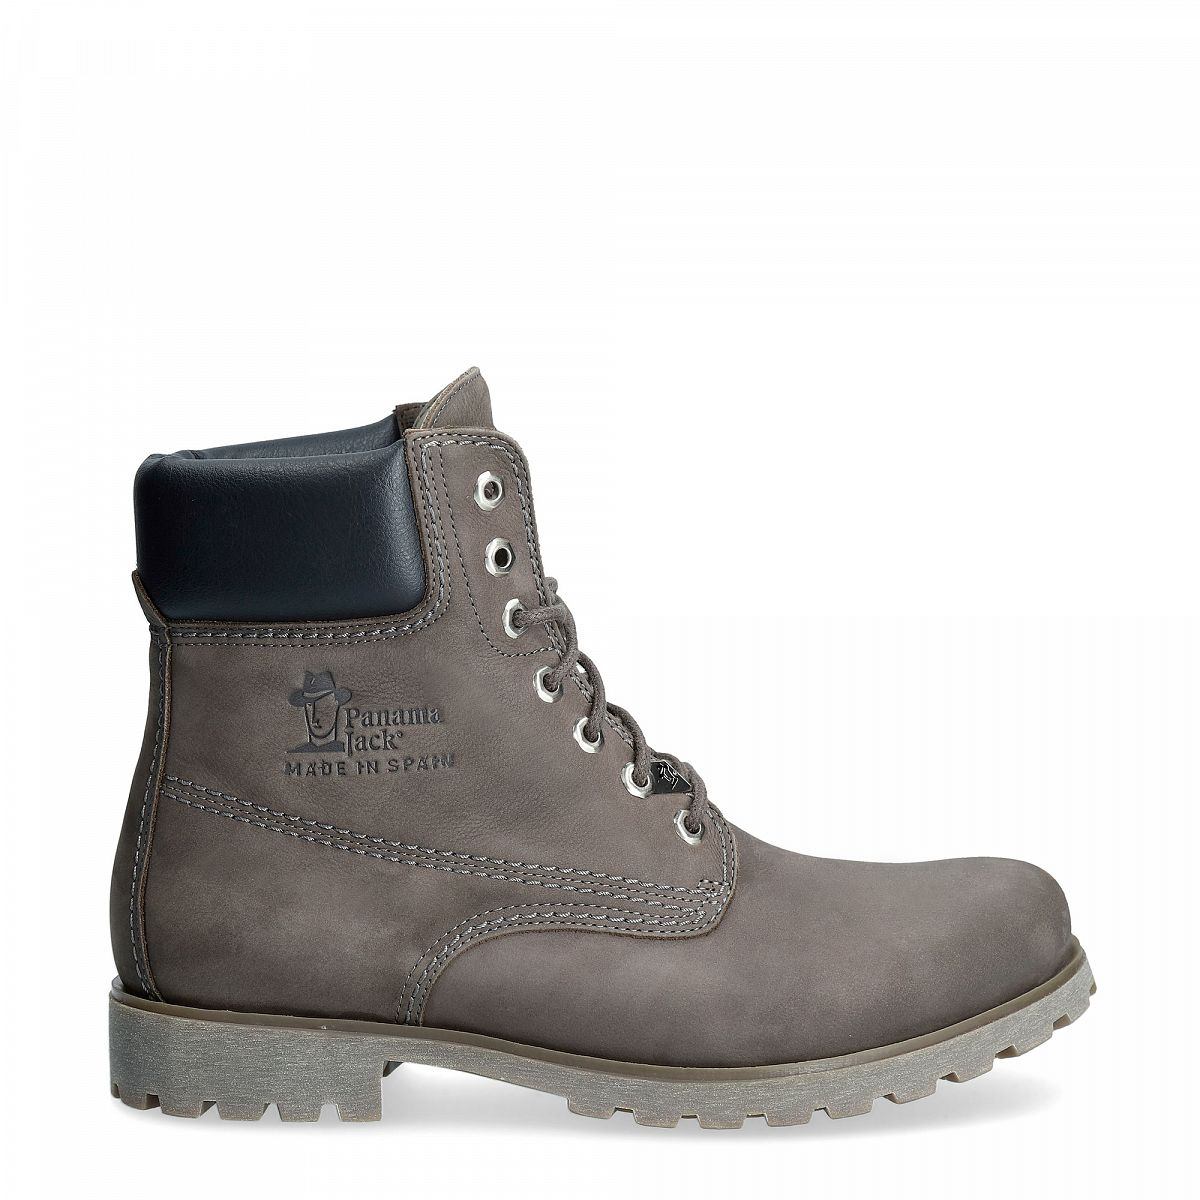 Grey leather boot with a leather lining